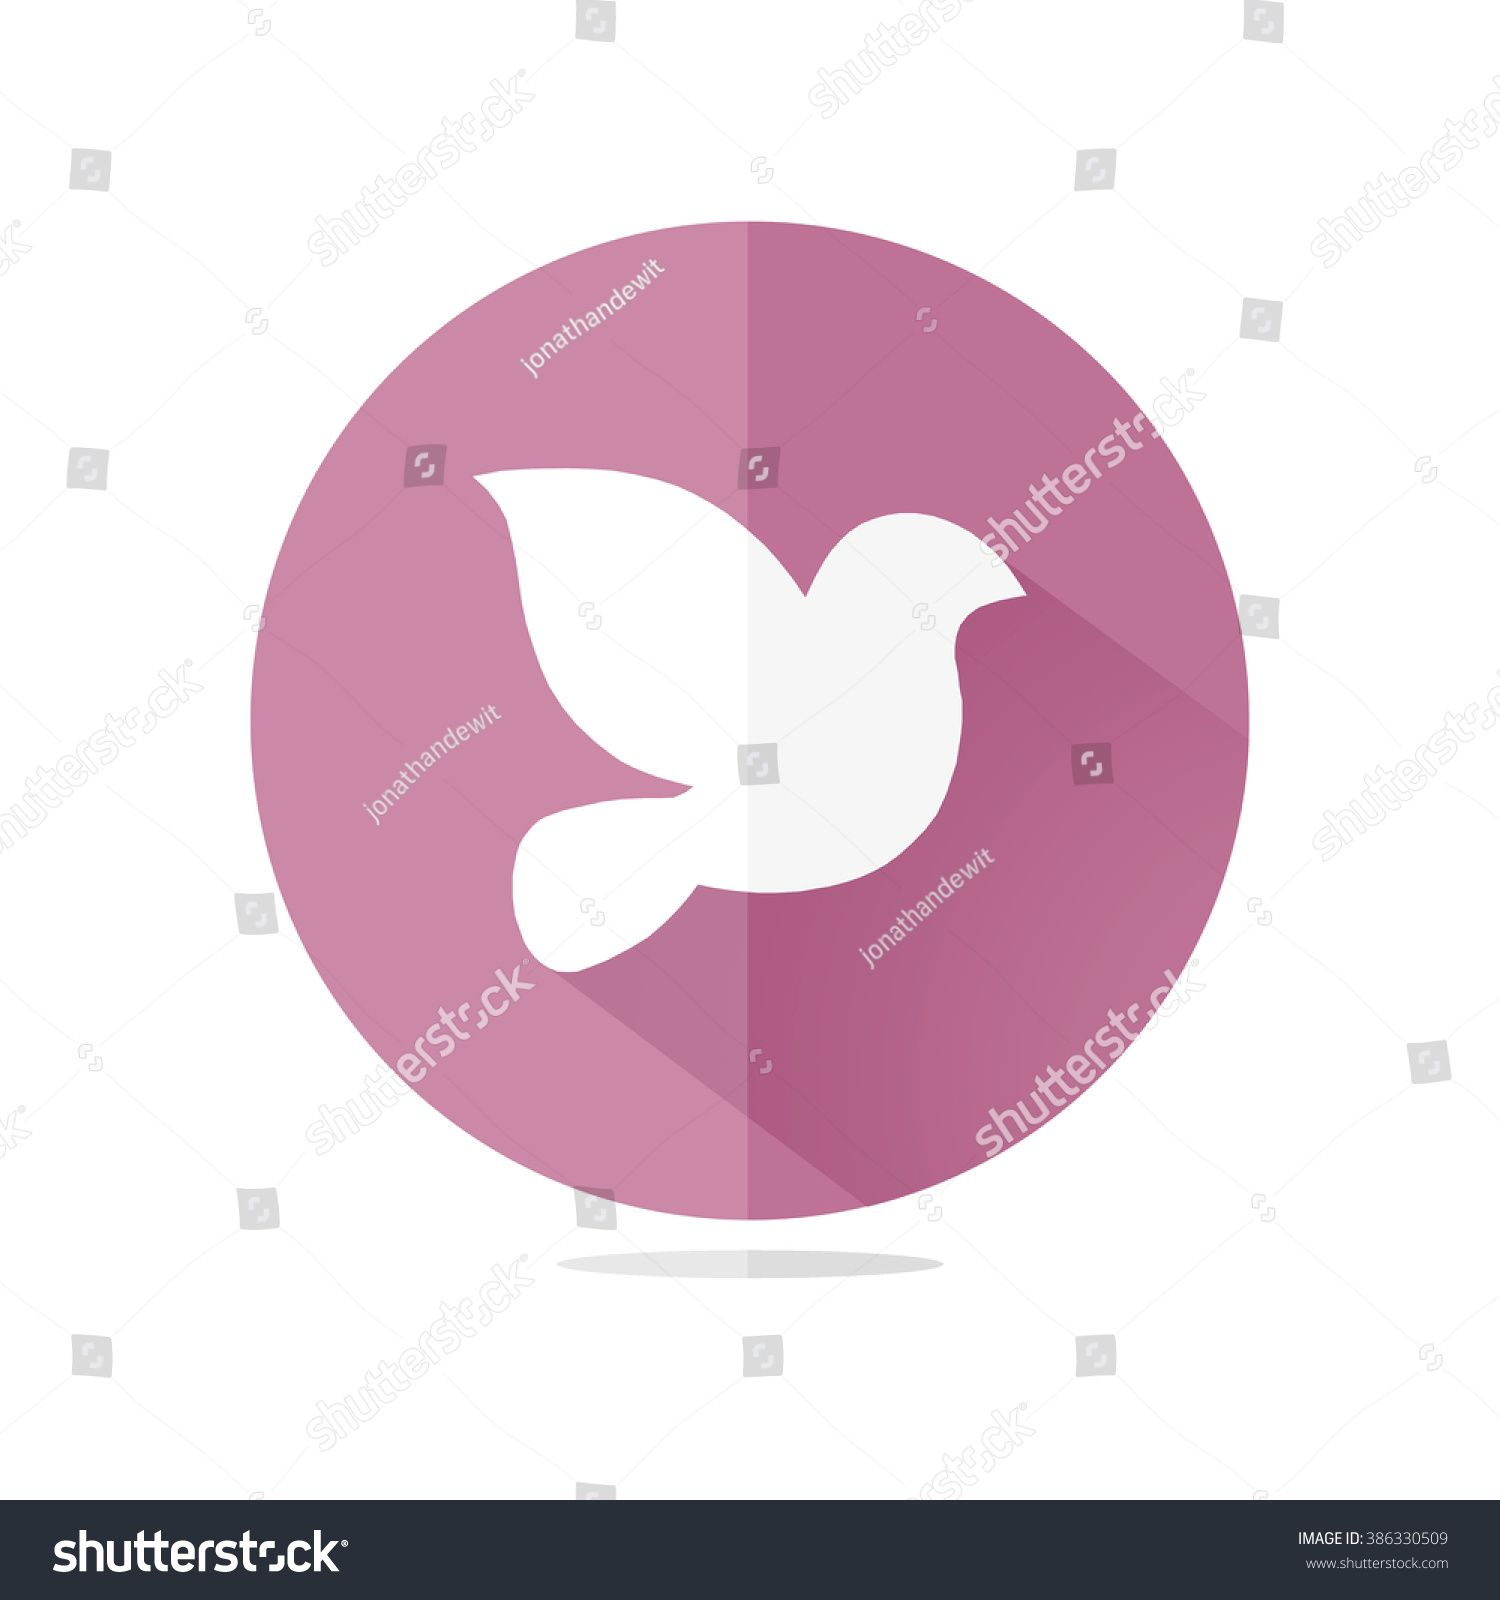 Stock Of Photos Christianity Symbol Yahoo Image Search Results